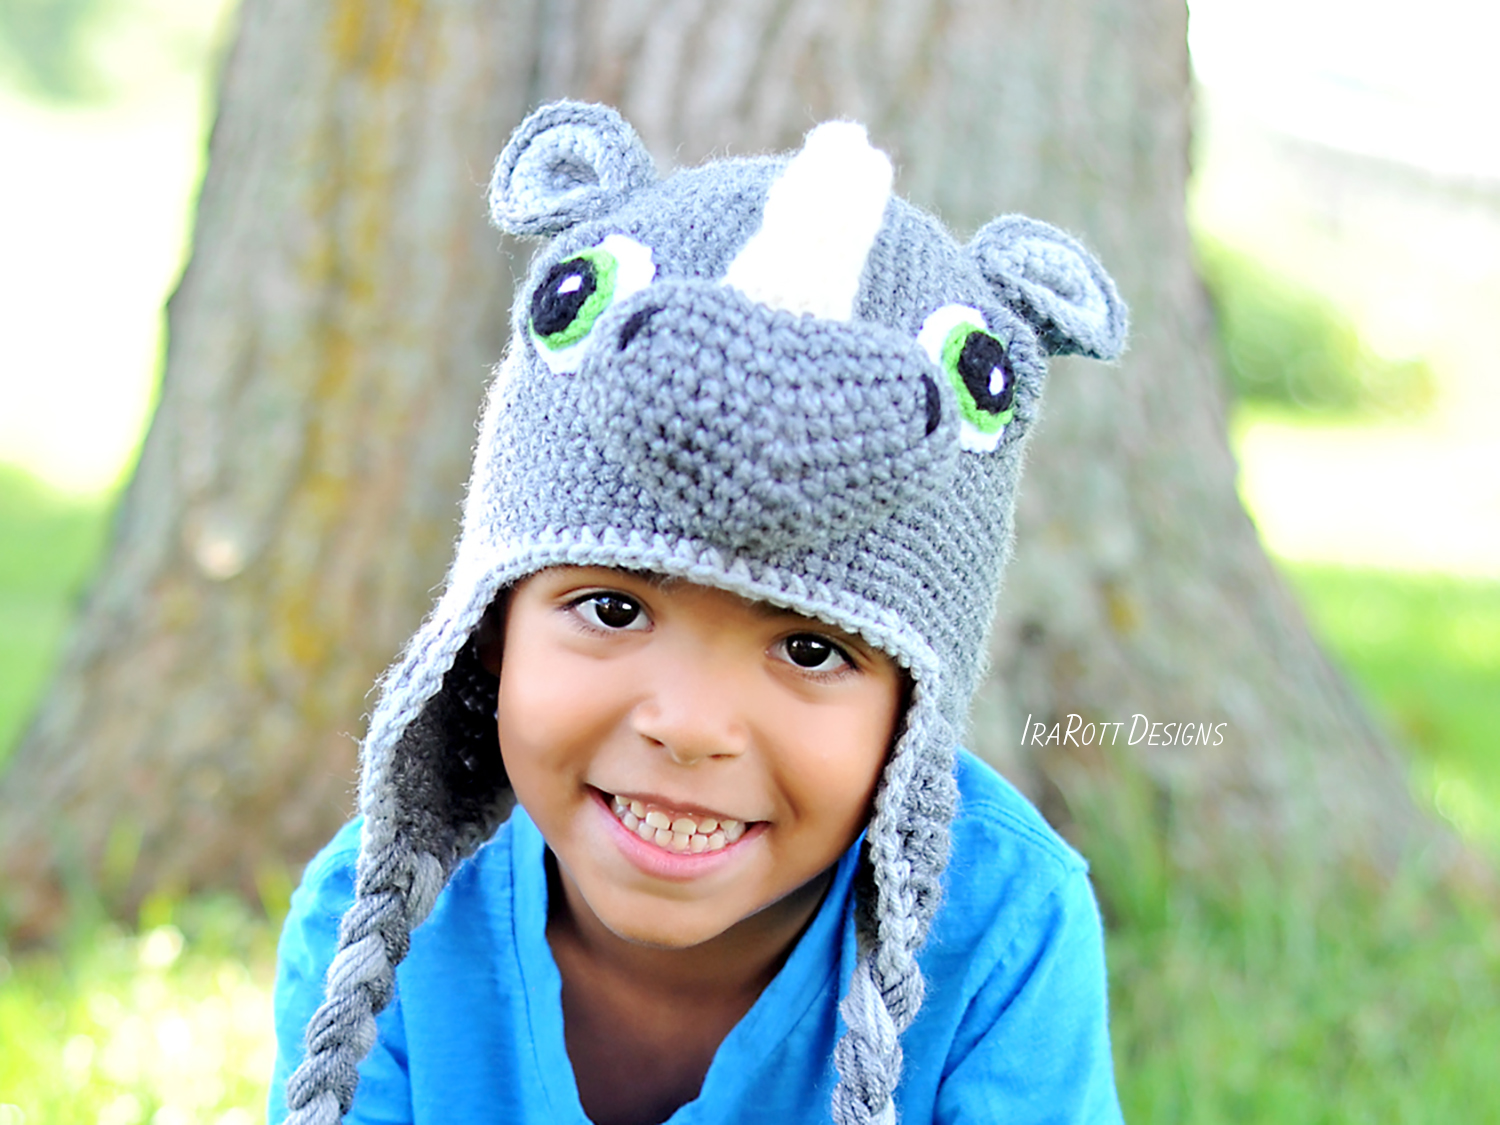 Rhino Rhinoceros Animal Hat Crochet Pattern for boys and girls of all ages